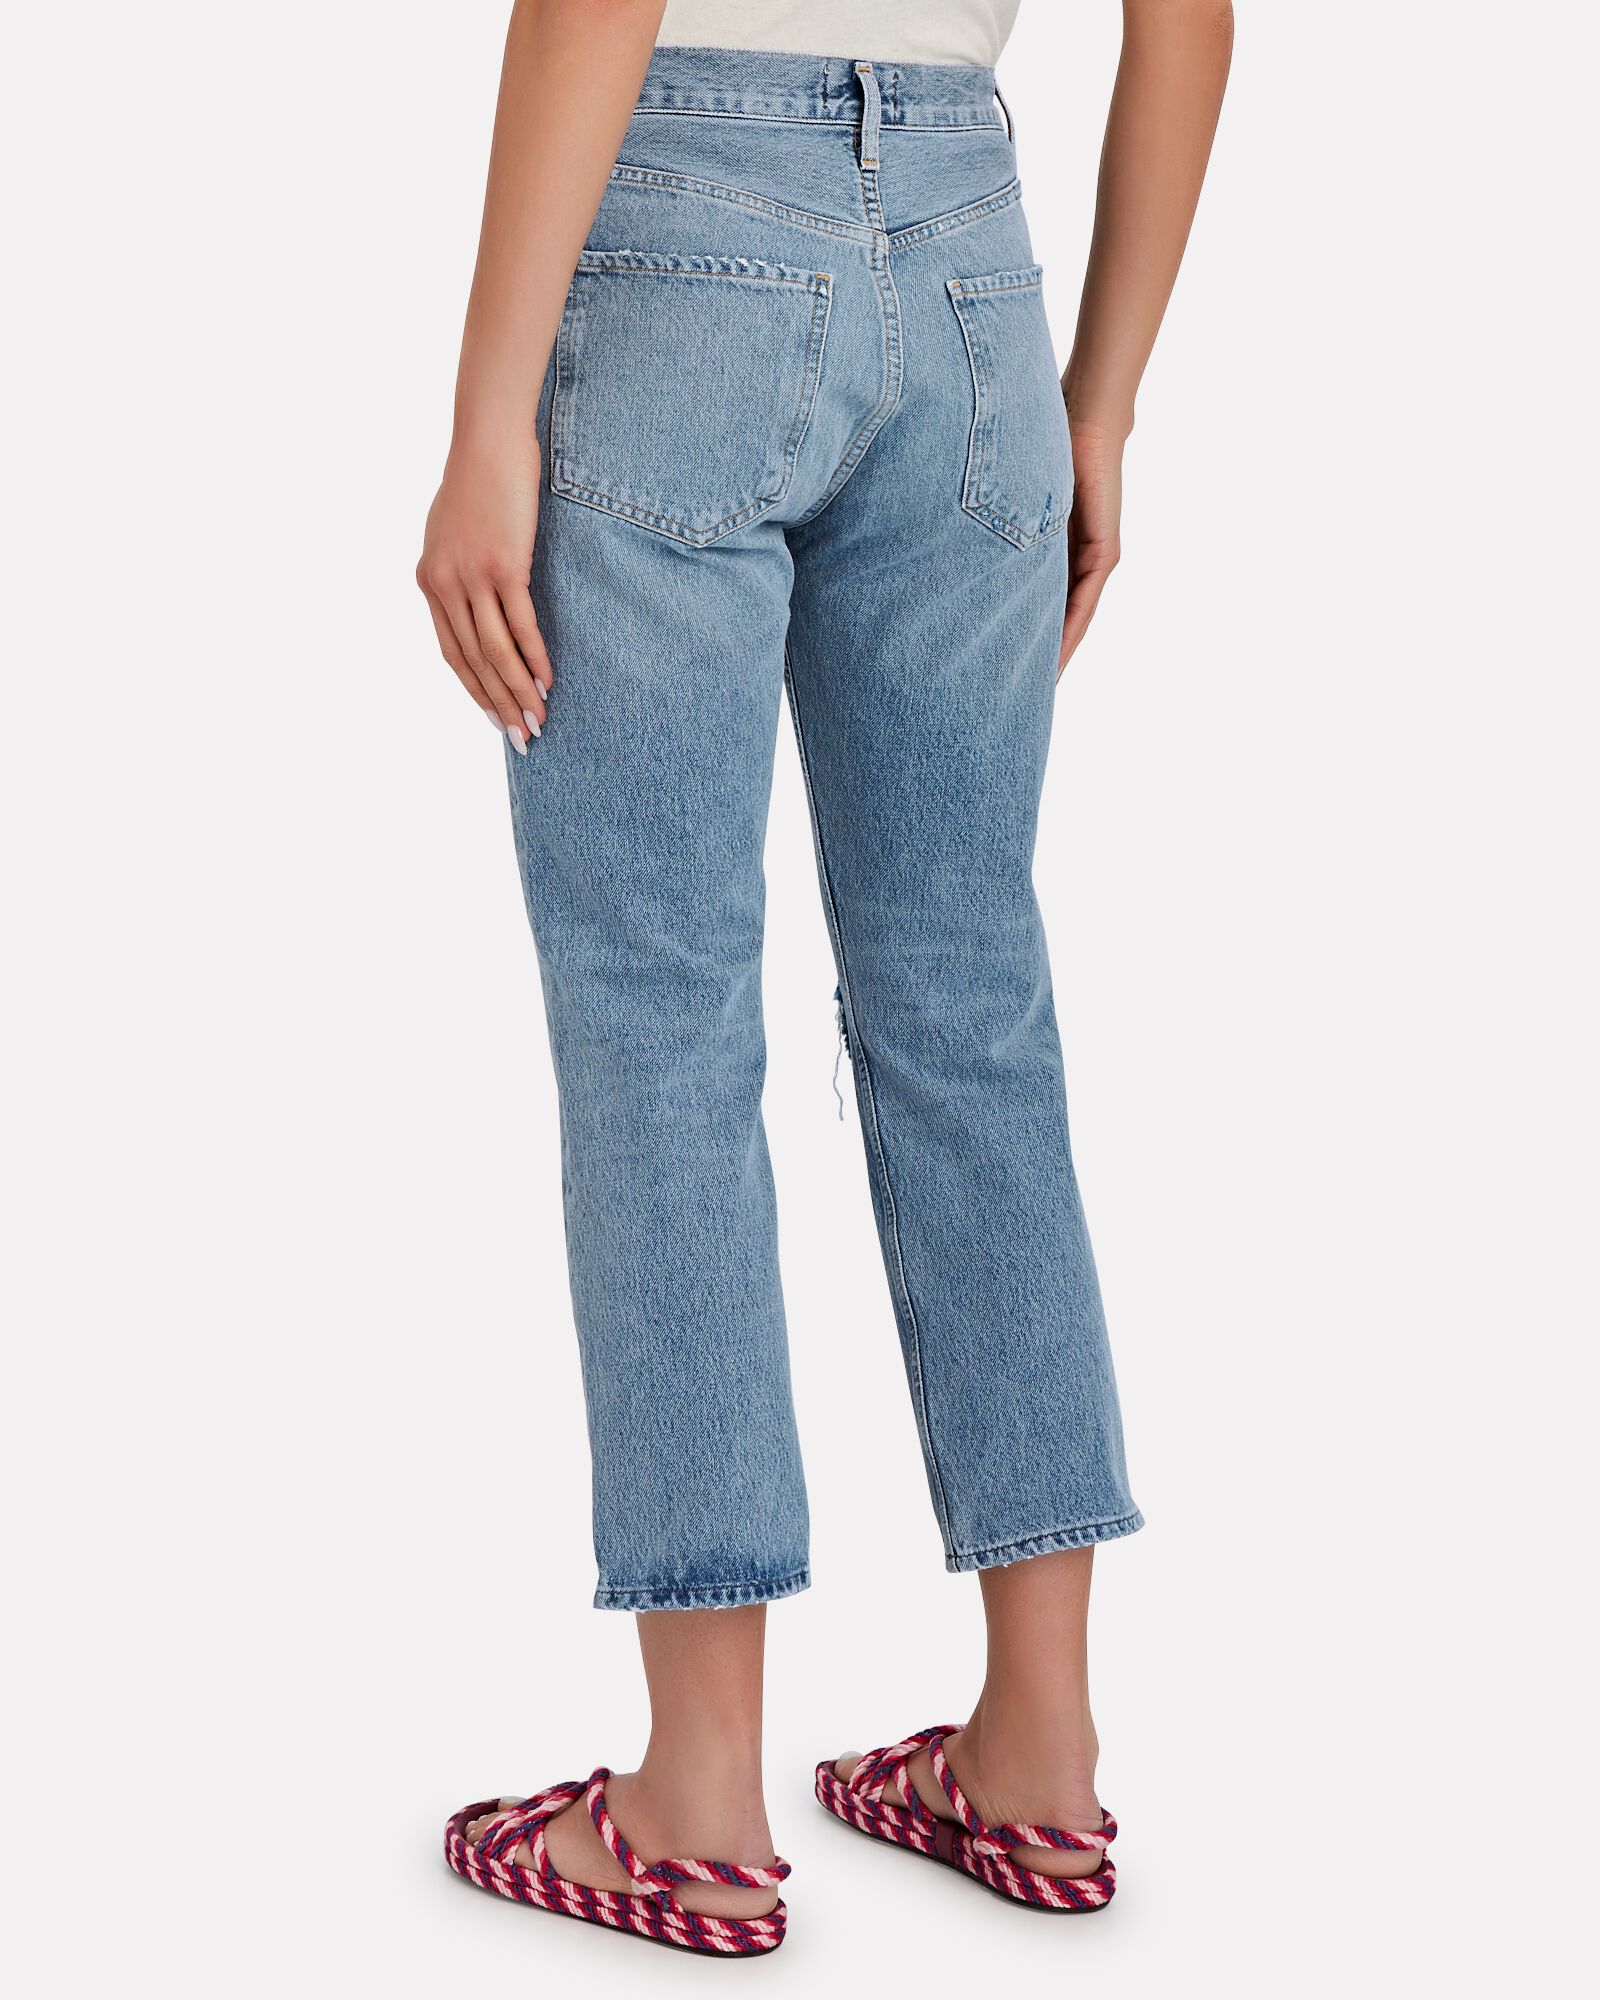 Riley High-Rise Cropped Jeans, ENDEAVOR, hi-res